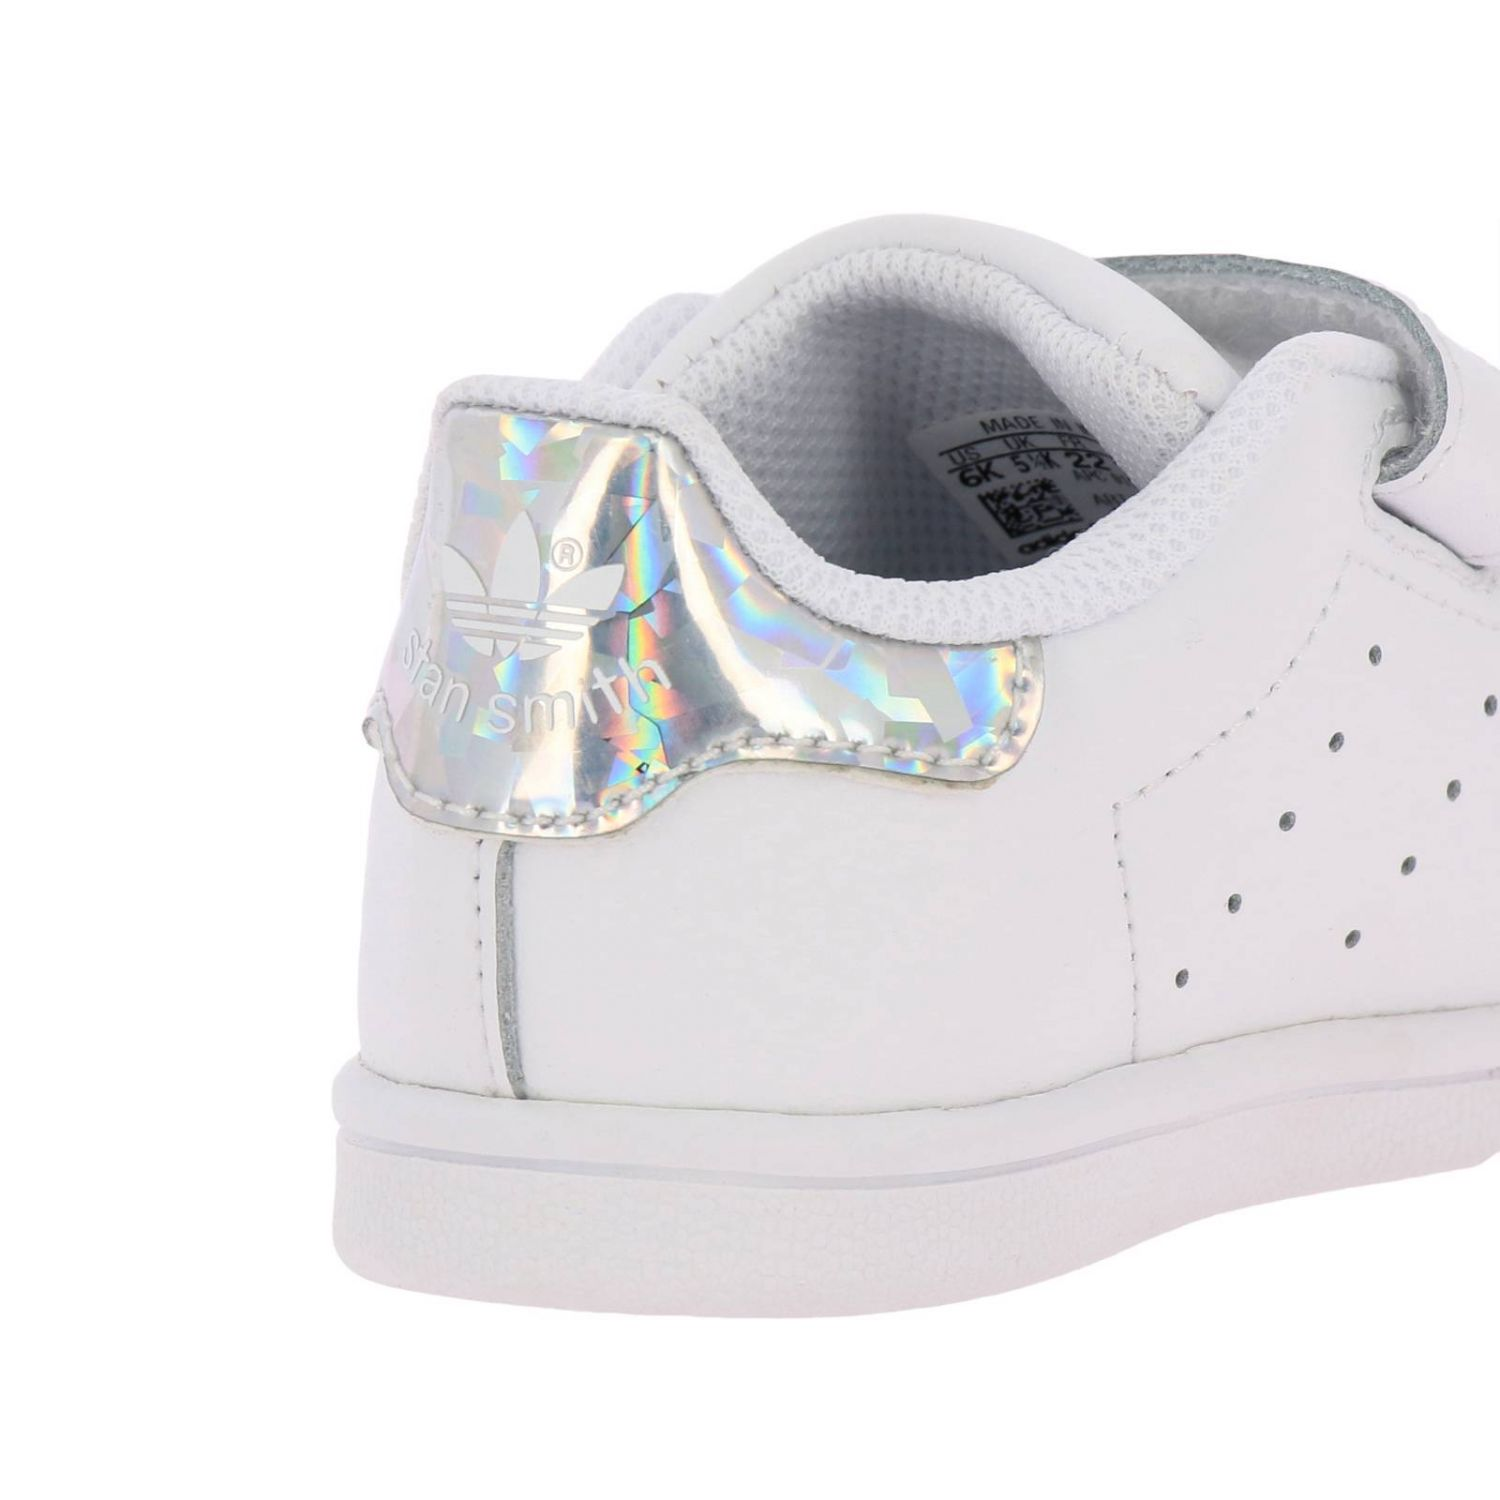 Shoes Adidas Originals: Stan Smith Adidas Originals Sneakers in smooth leather with mirrored heel white 4